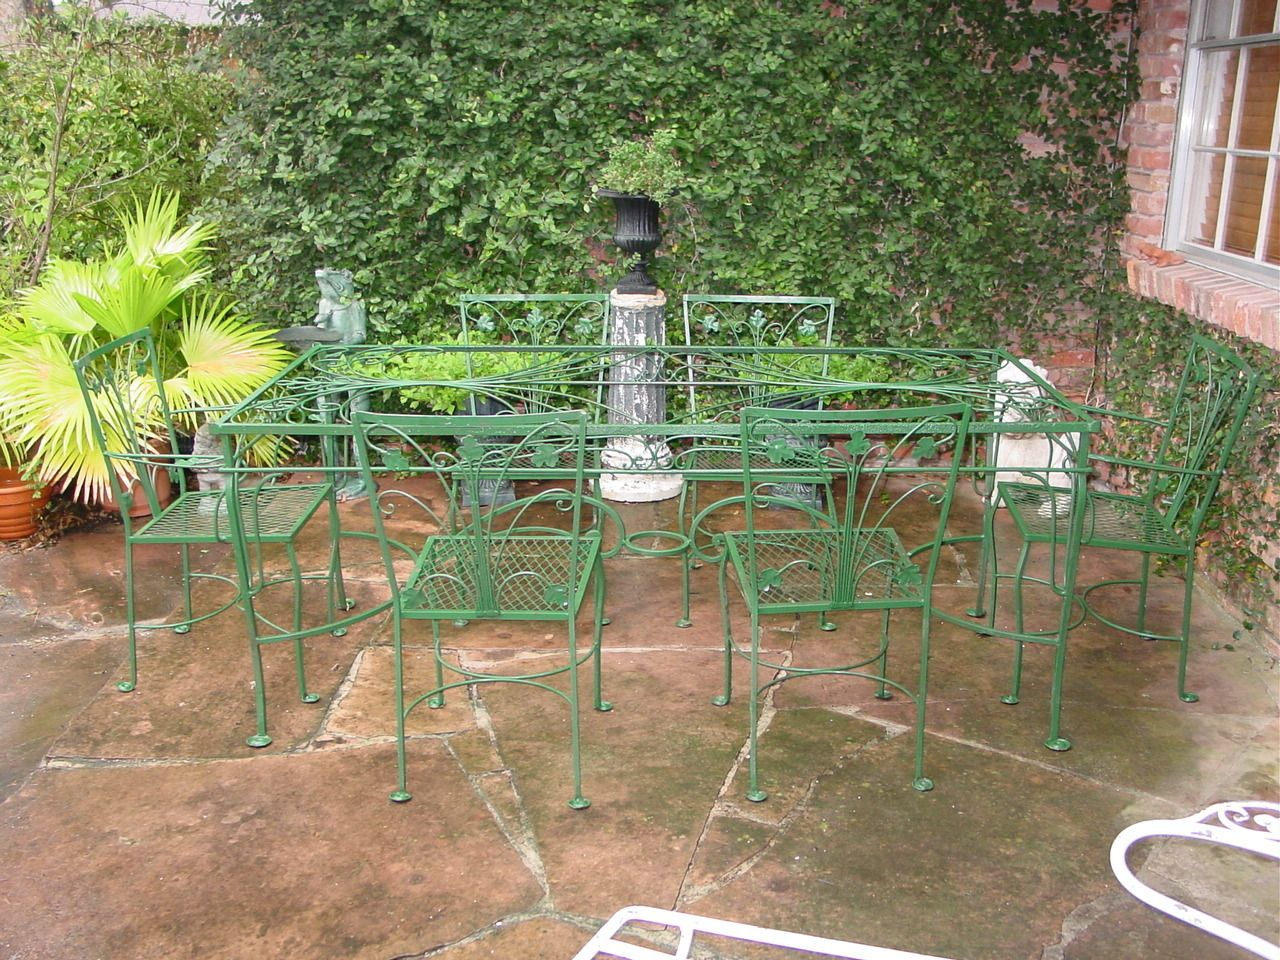 wrought iron garden furniture antique. salterini 7pc wrought iron art deco table u0026 chairs iron furnituregarden furnituresalterinivintage wrought garden furniture antique e